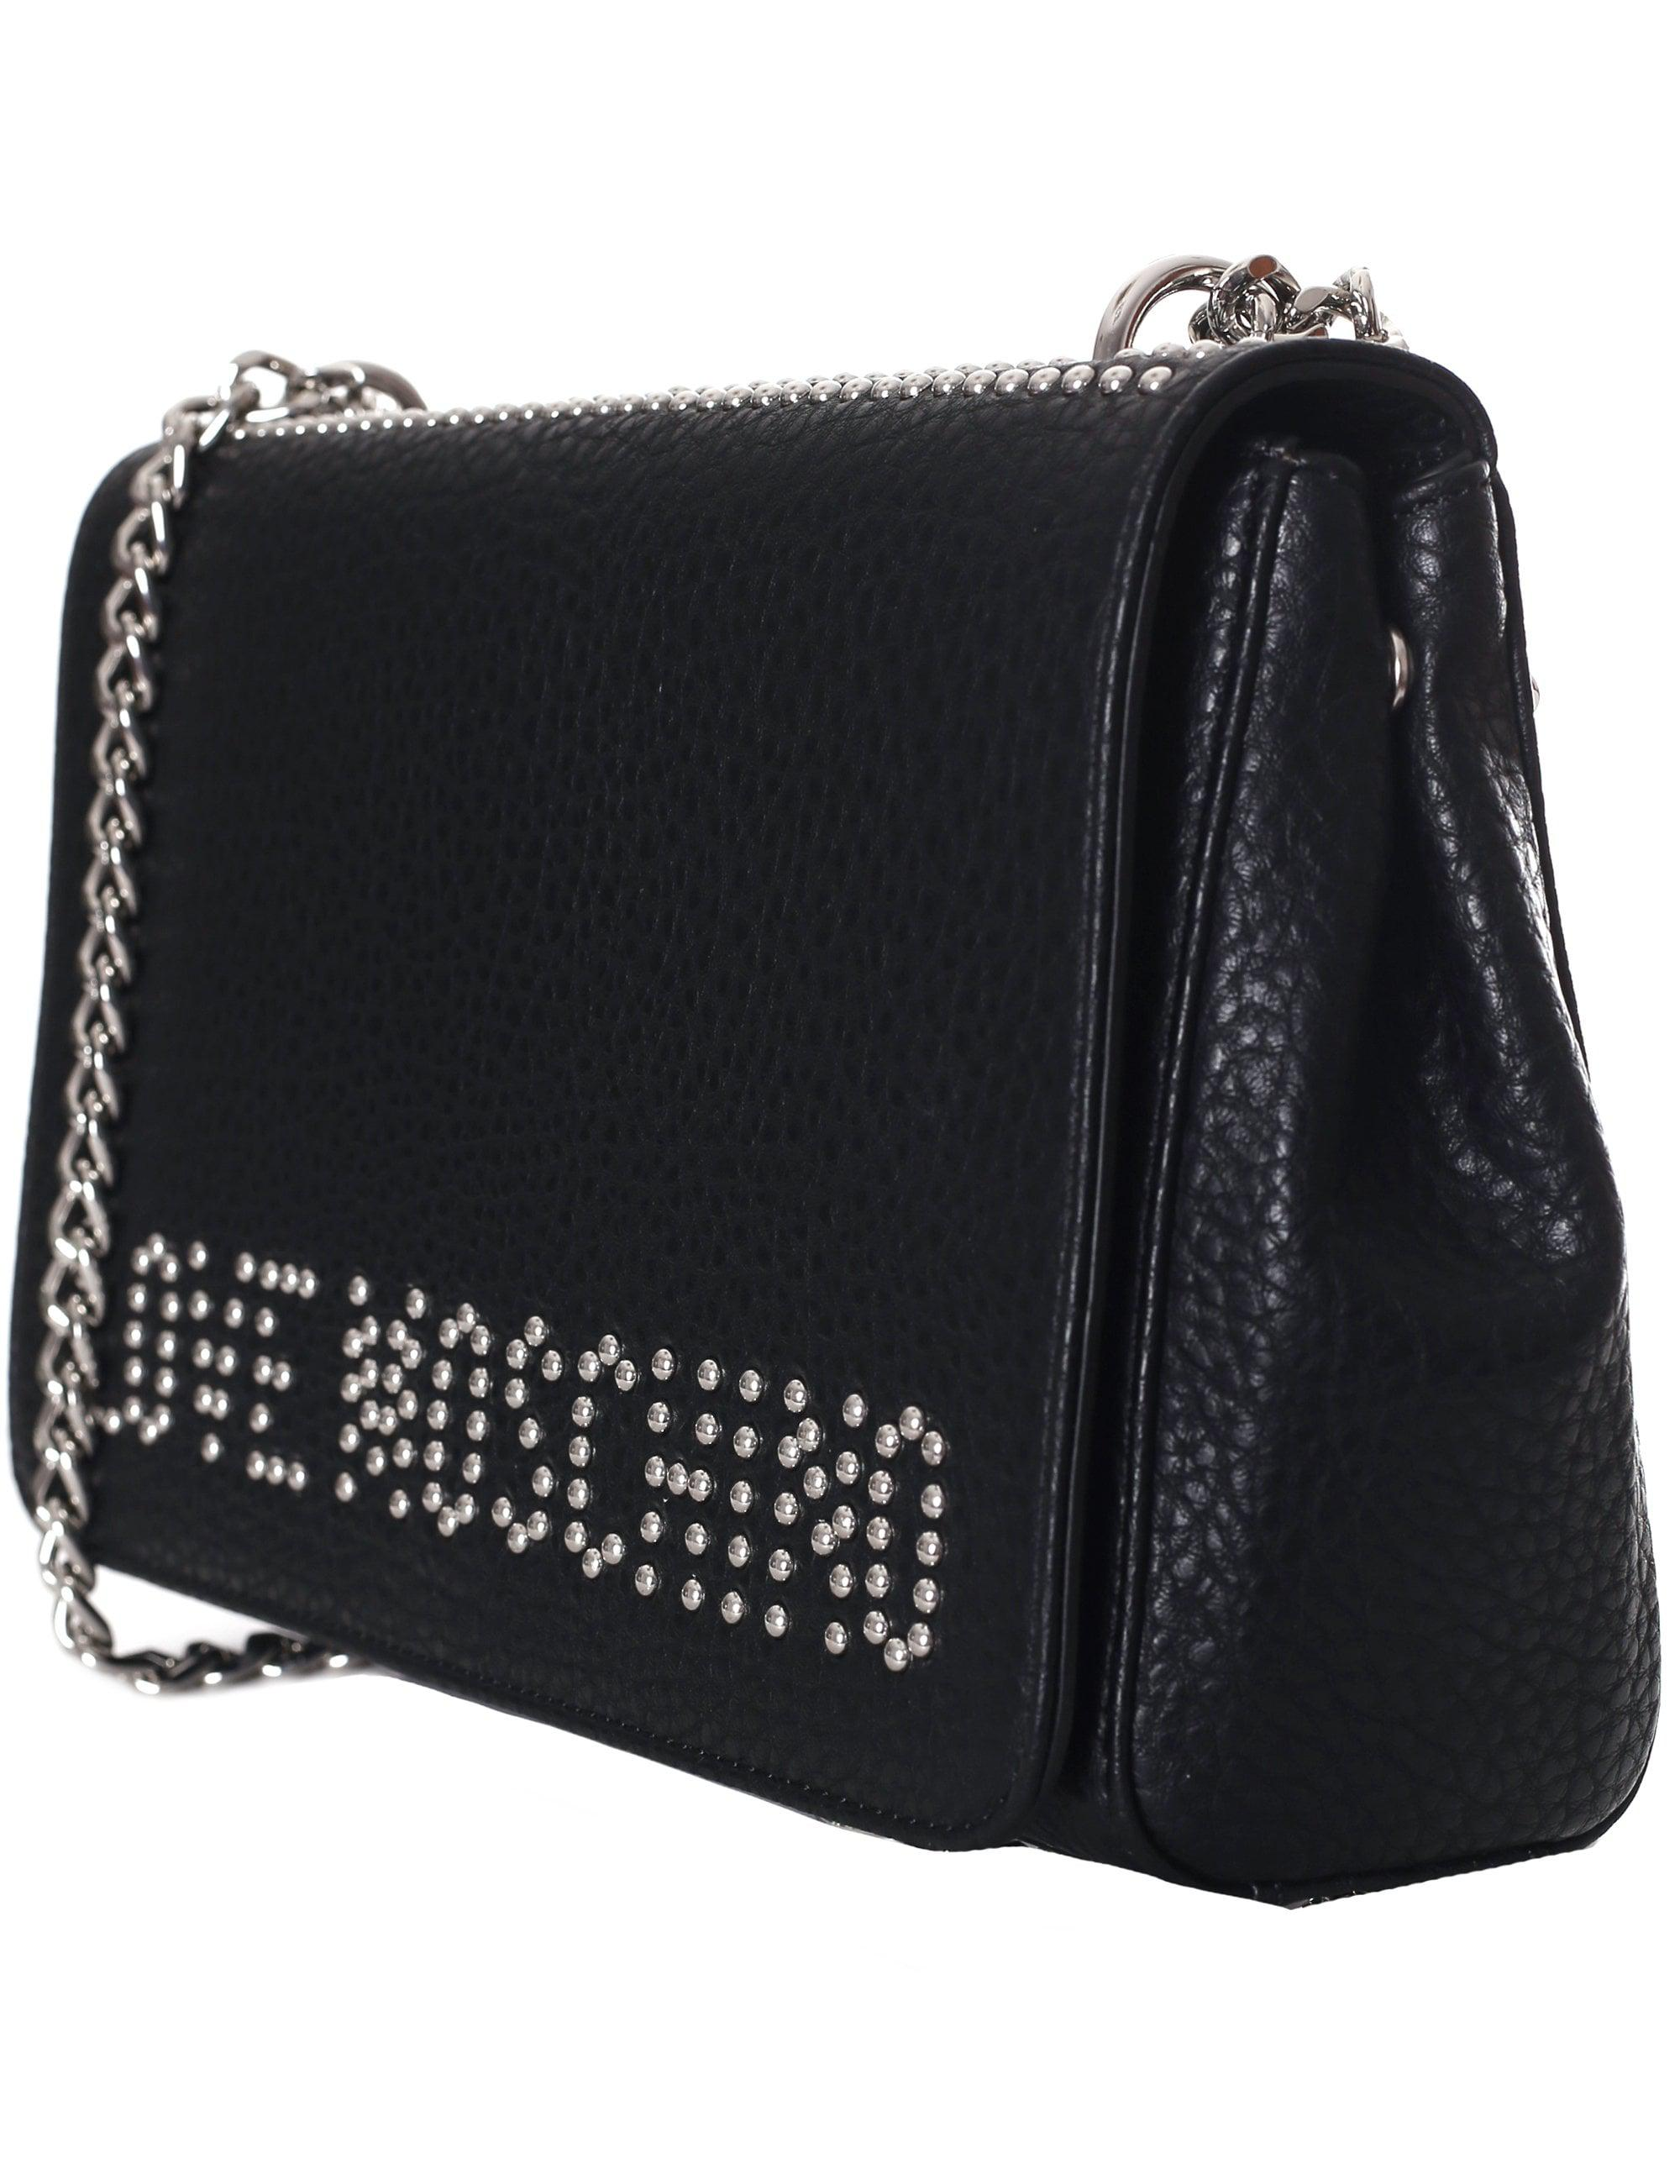 7e318731d1e Love Moschino Studded Logo Chain Shoulder Bag in Black - Lyst